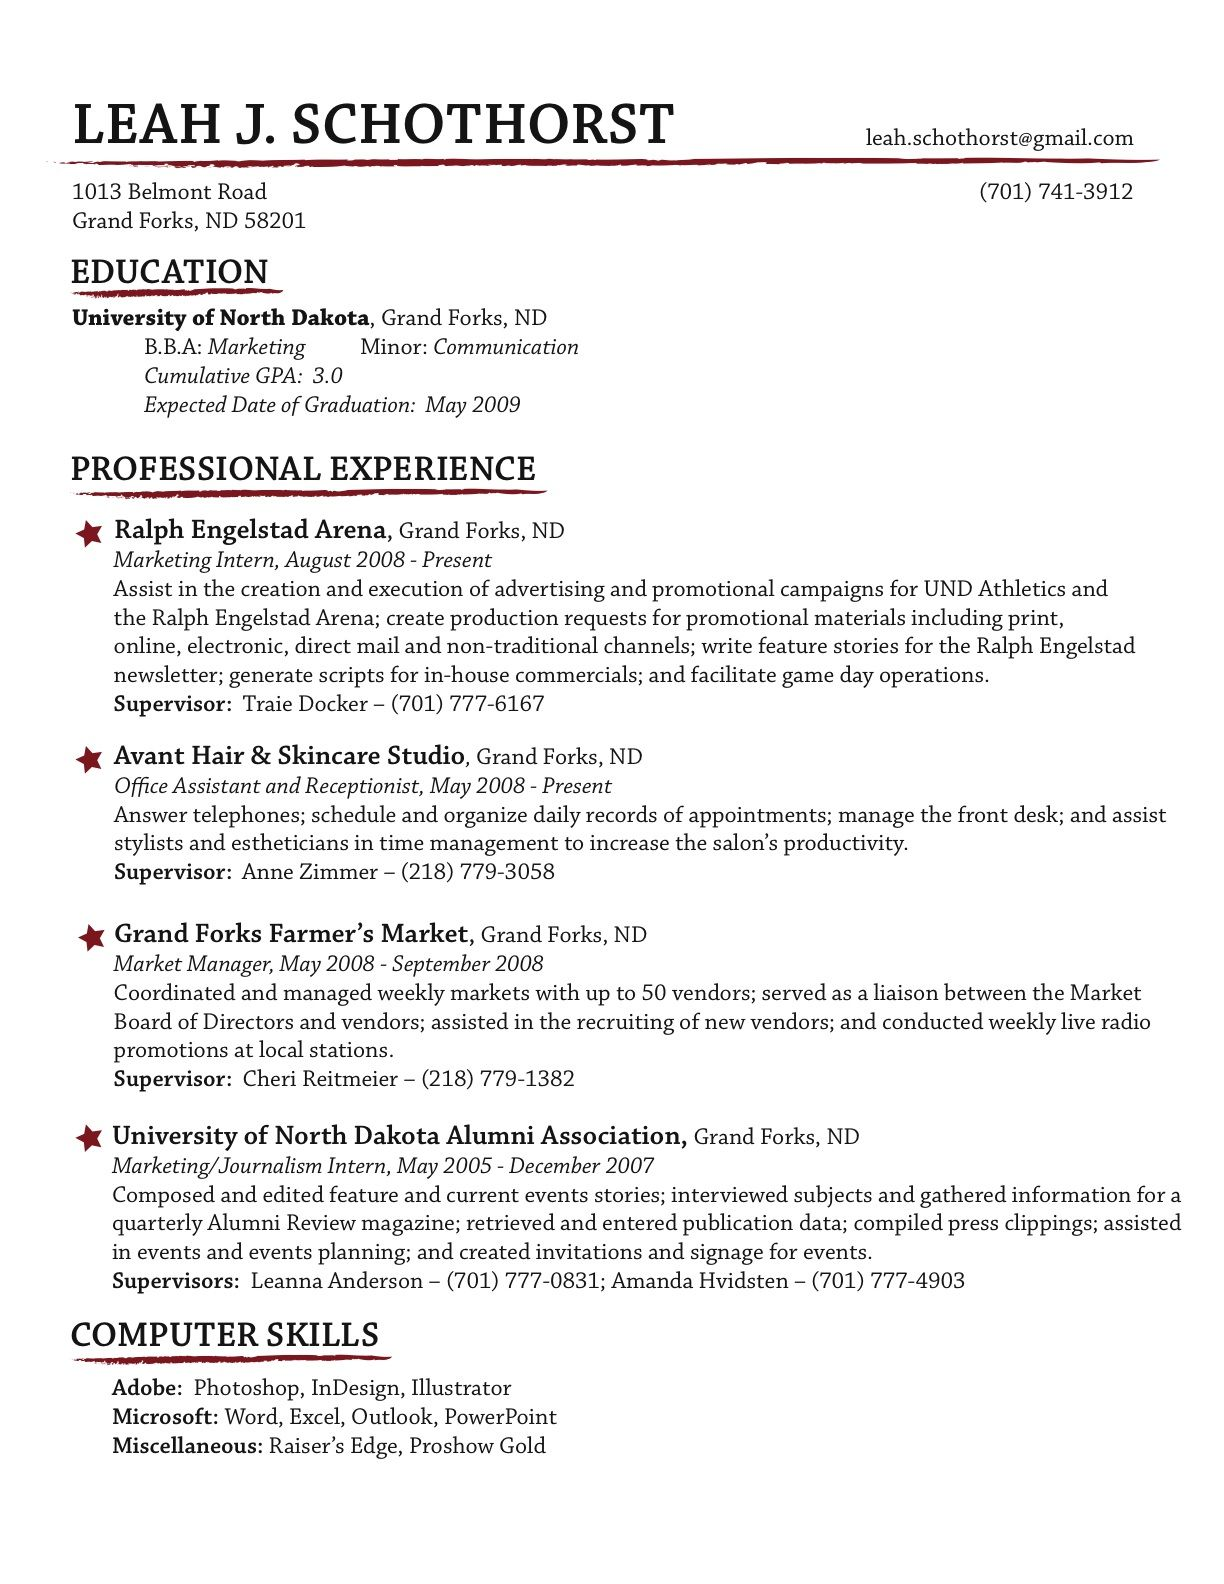 Exceptional Pinterest On How To Format A Resume Resume